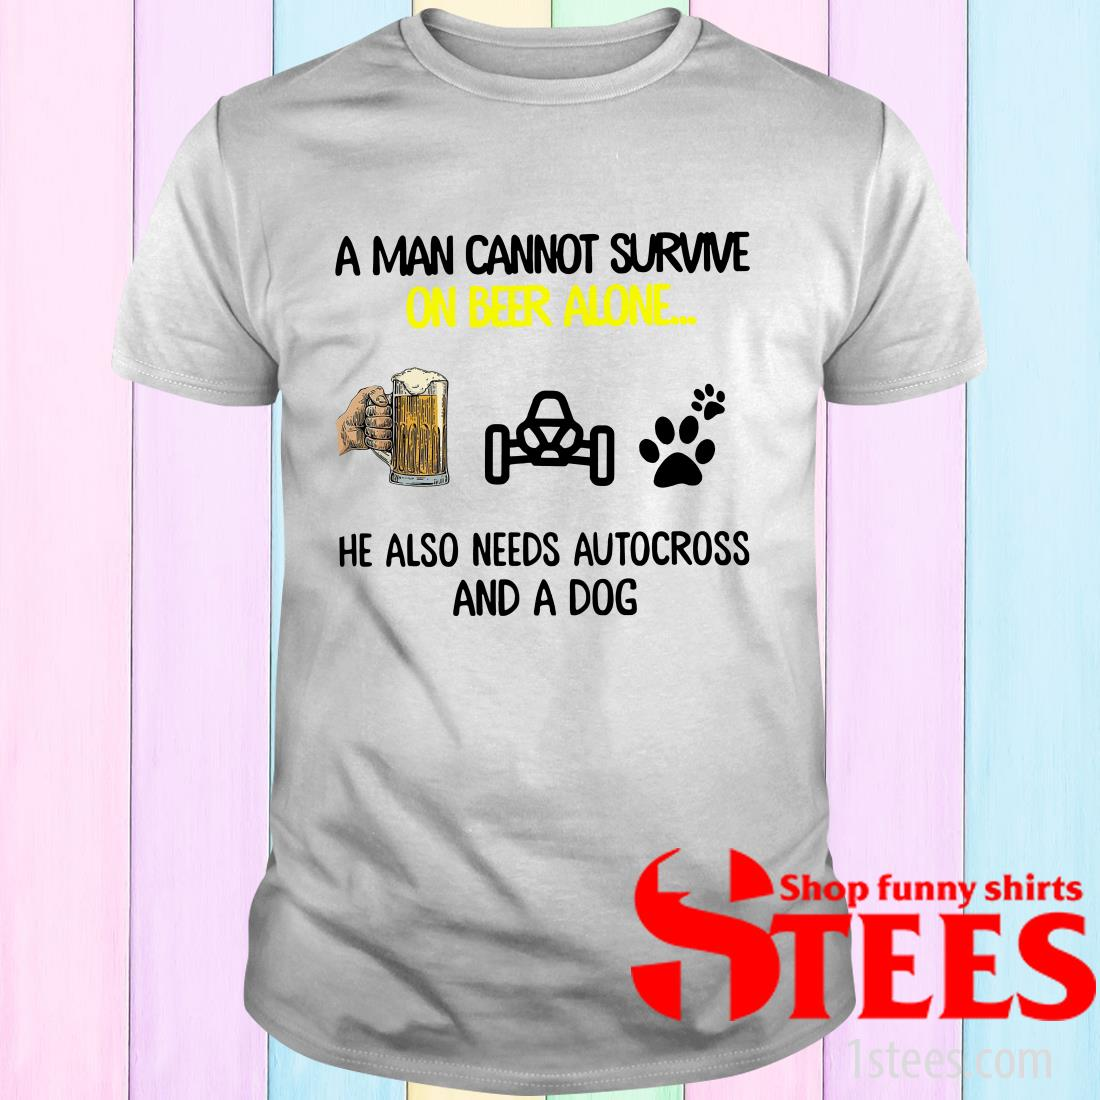 A Man Cannot Survive On Beer Alone He Also Needs Autocross And A Dog Shirt